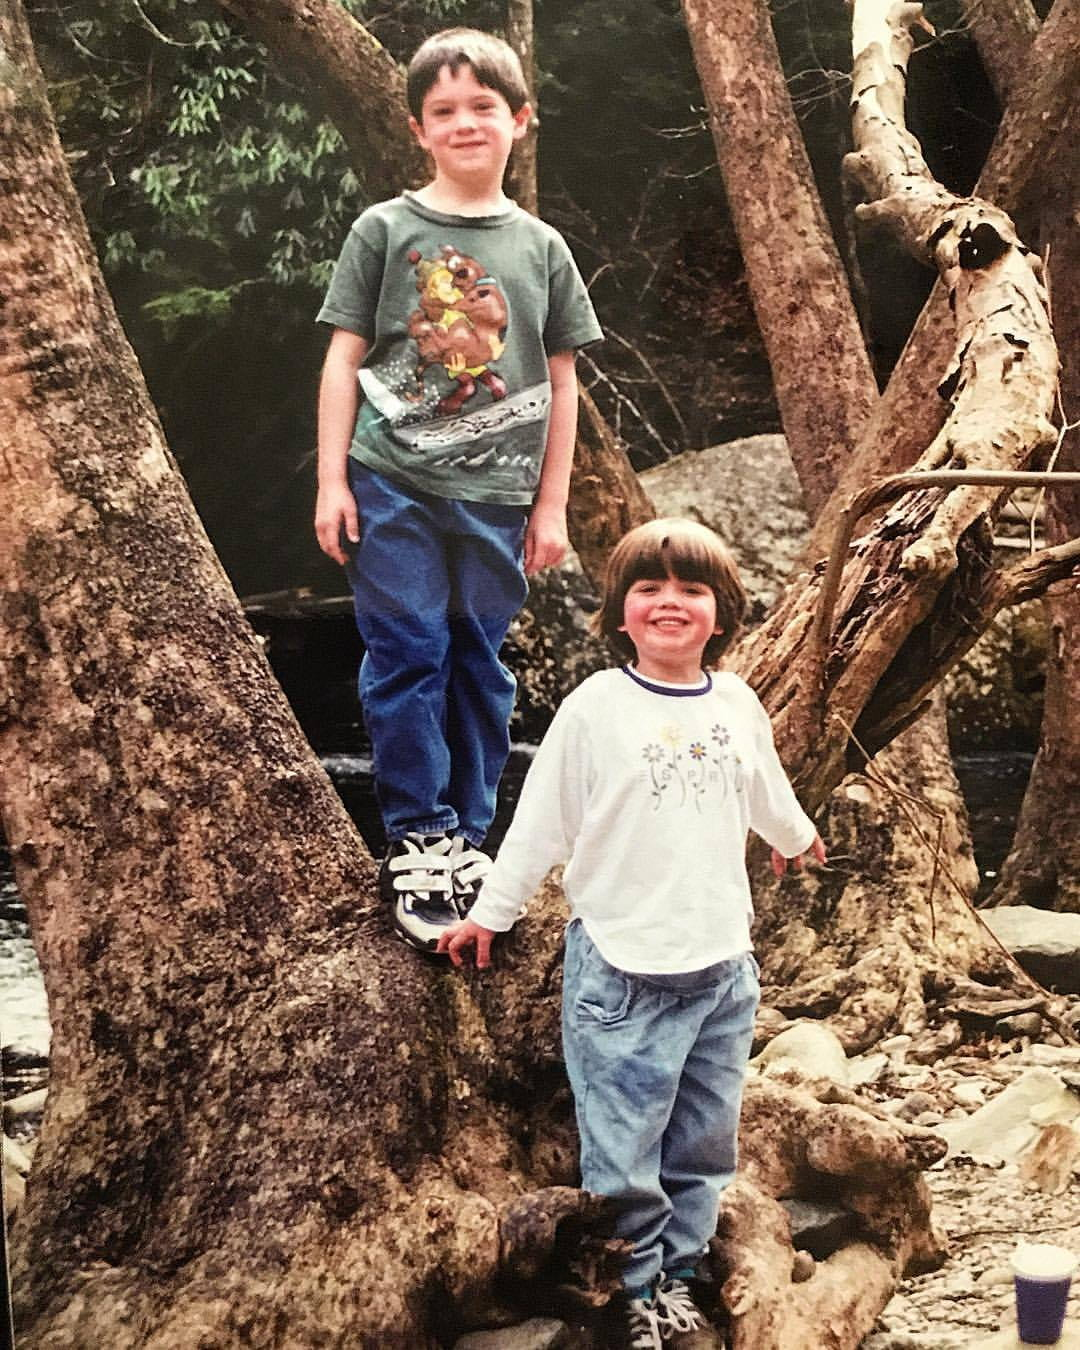 The author and his sister in childhood climbing a tree.